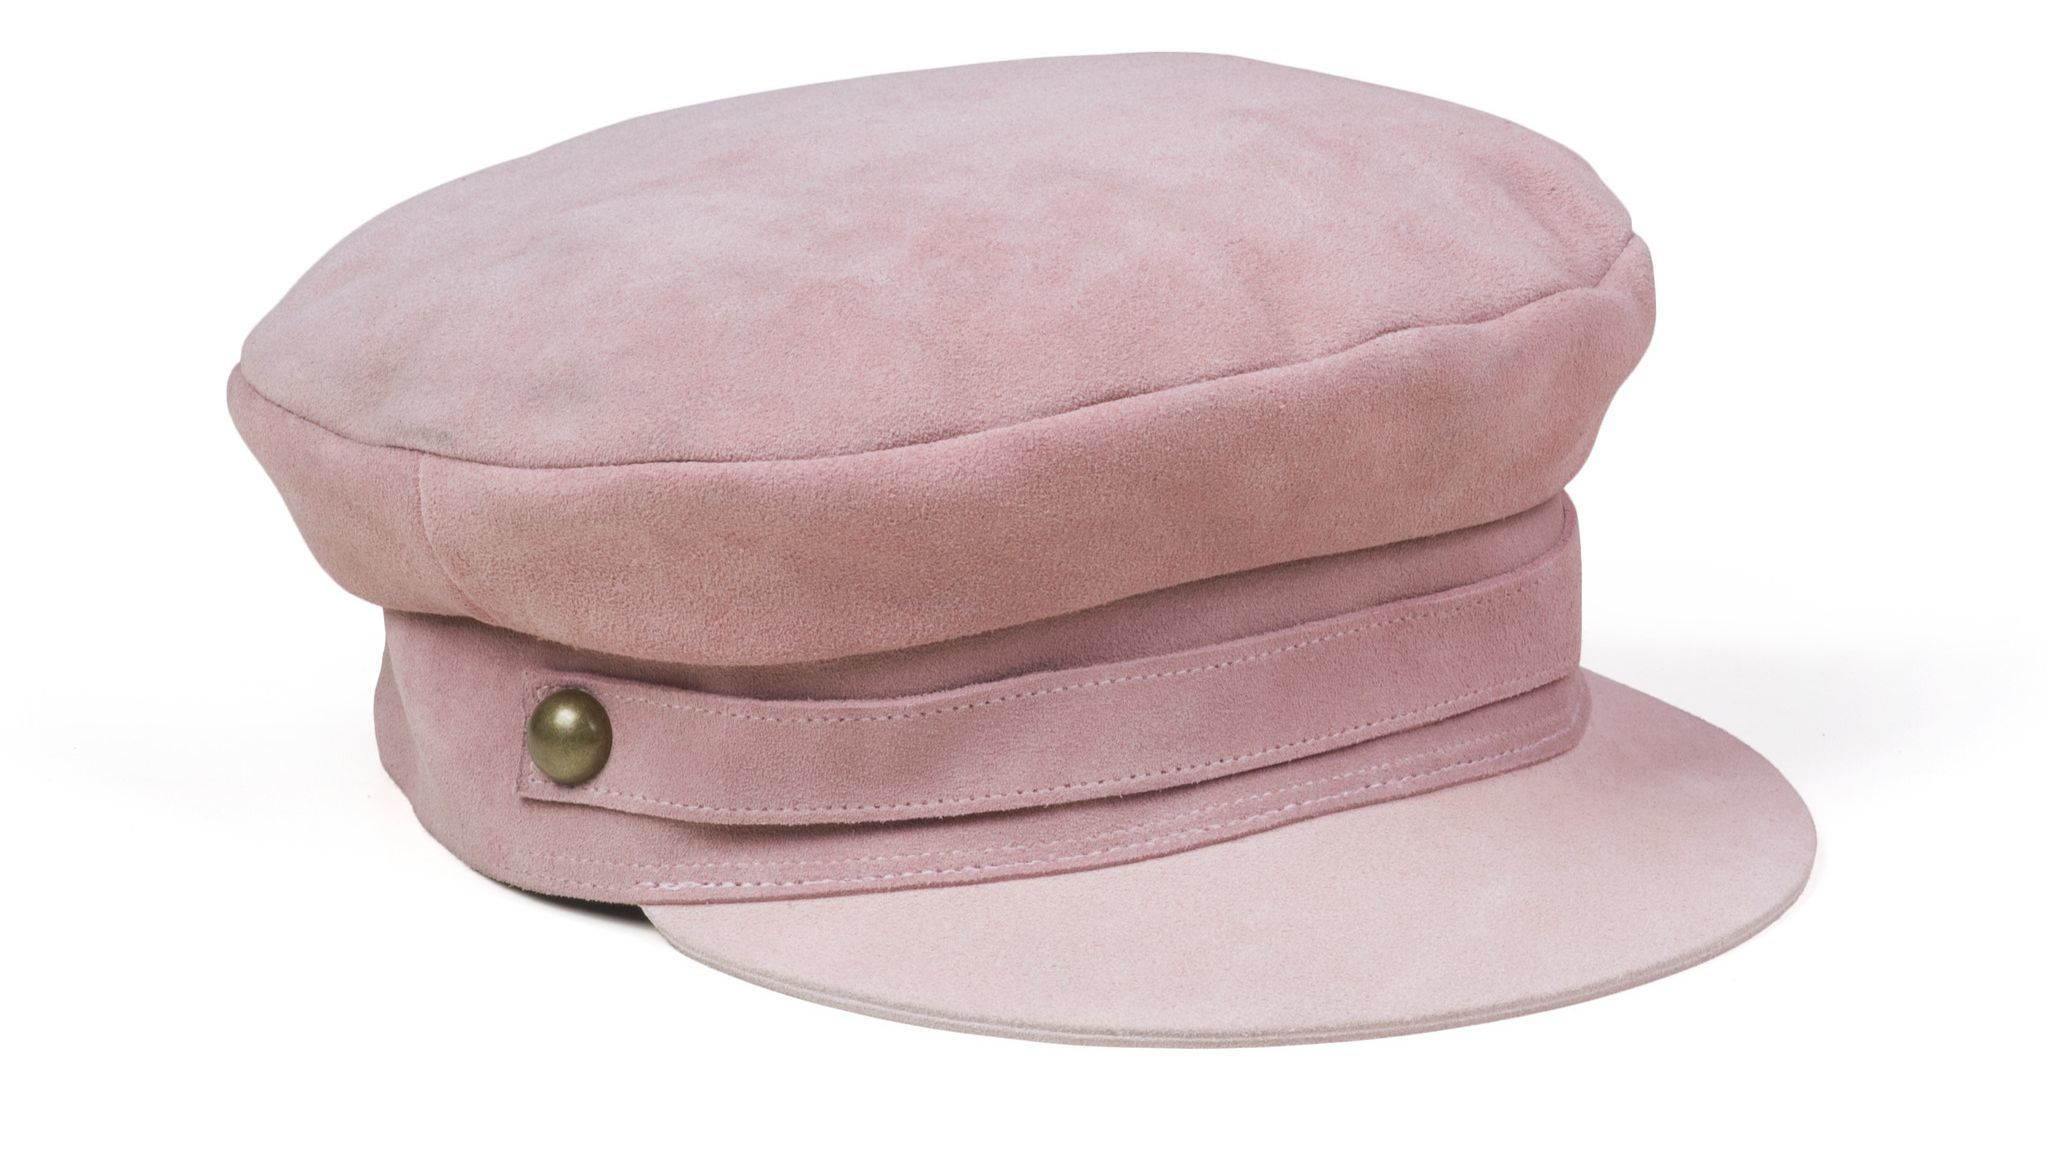 A pink suede slouch cap